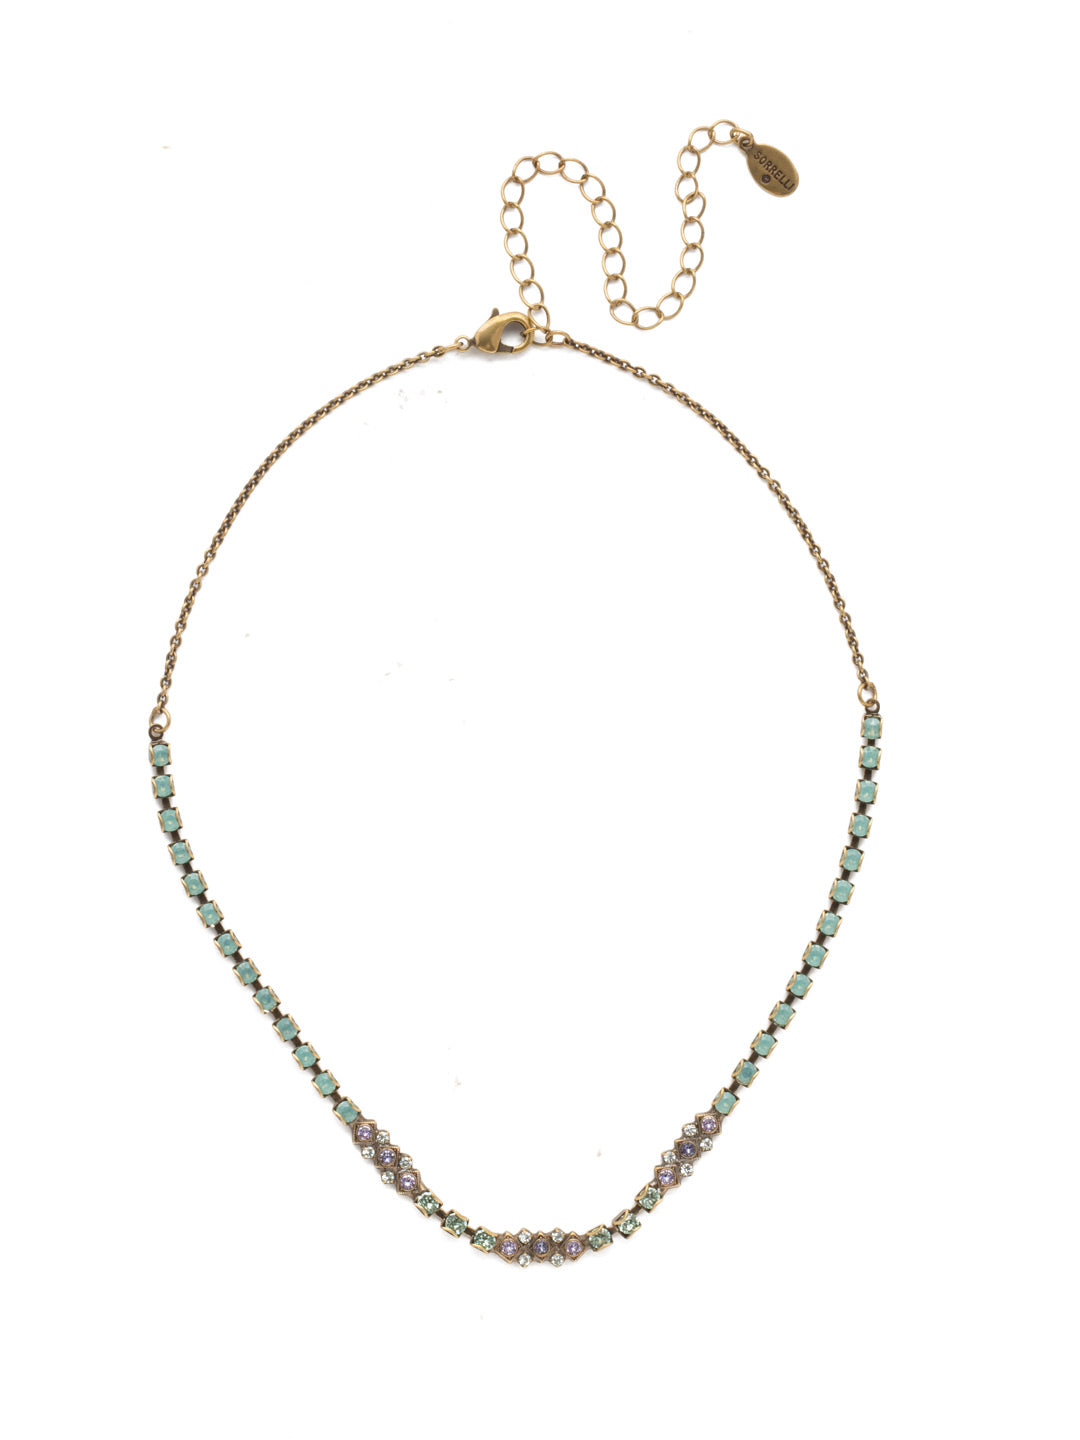 Jacqueline Tennis Necklace - NEN5AGIRB